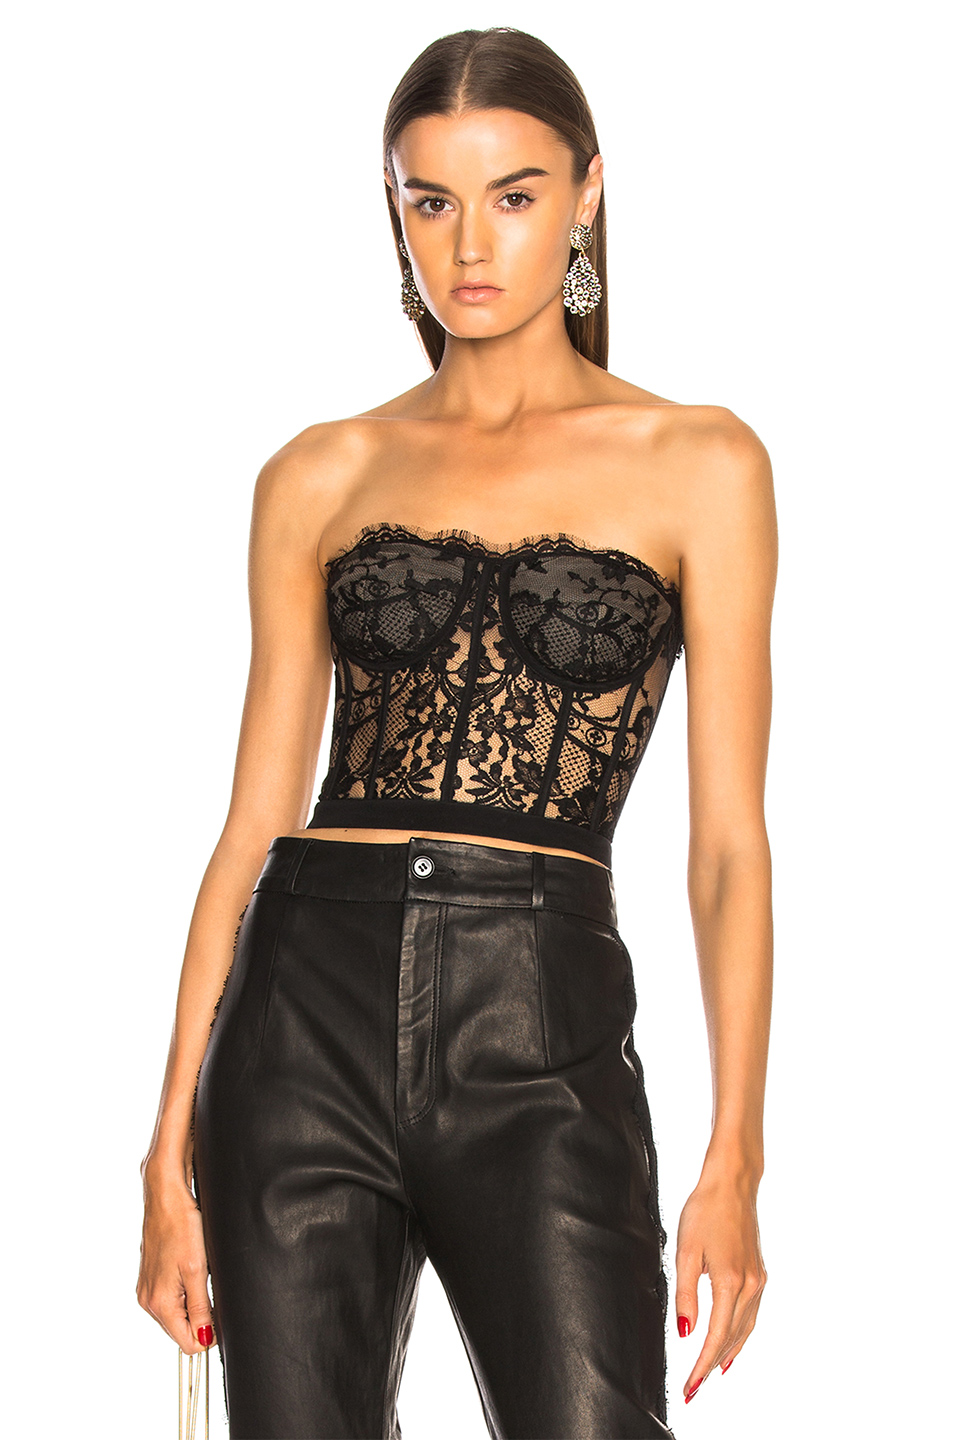 ee1e097c24428 Buy Original Alexander McQueen Lace Bustier at Indonesia